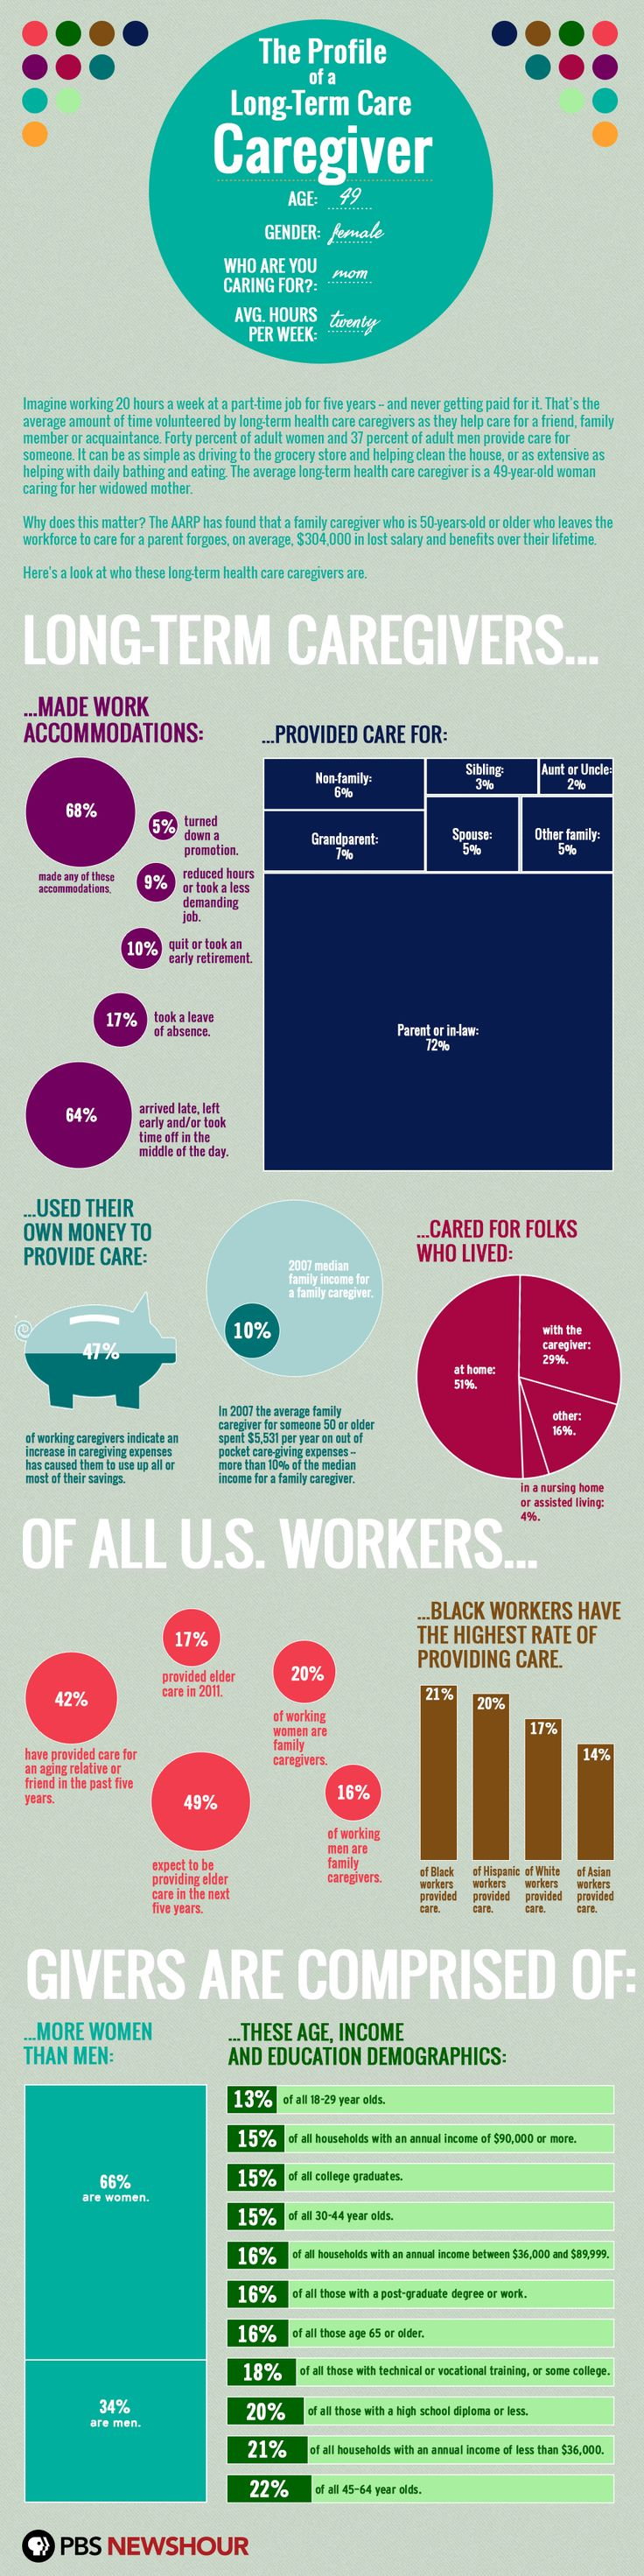 From @PBS. Stats on long-term caregivers using AARP studies. Incredible infographic.